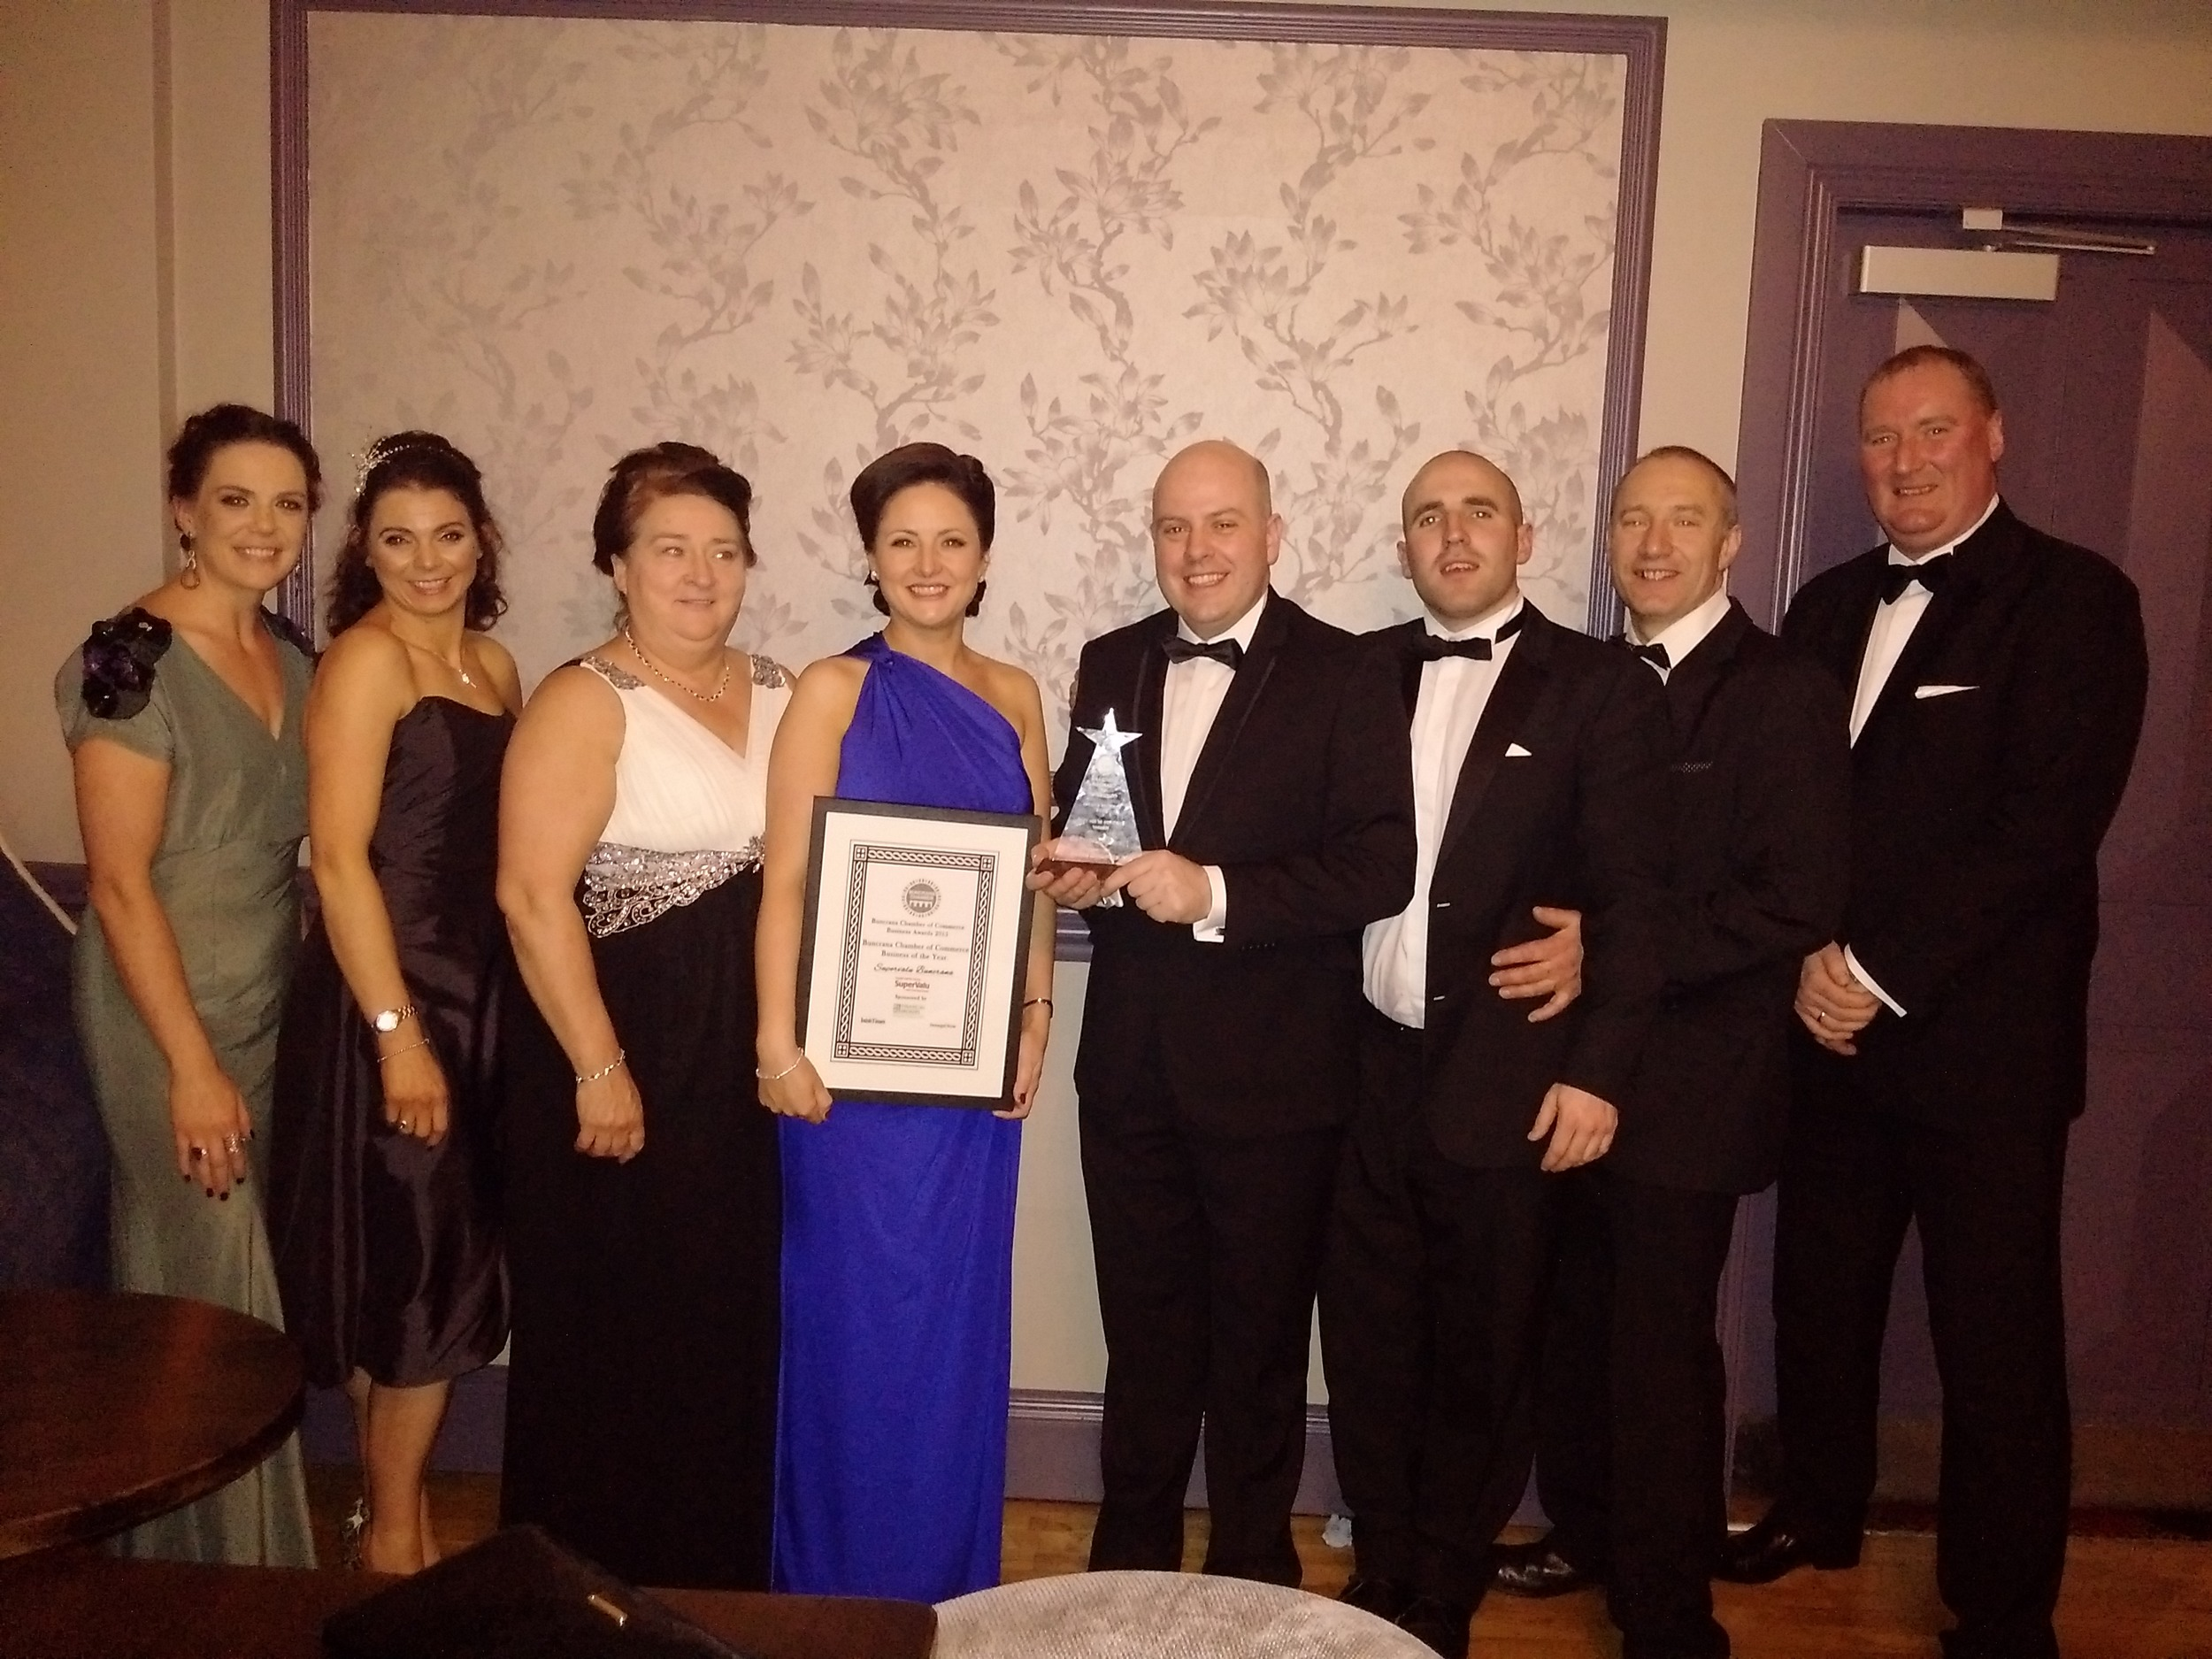 Manager at Kavanagh's SuperValu, Buncrana accepted the award on behalf of his team